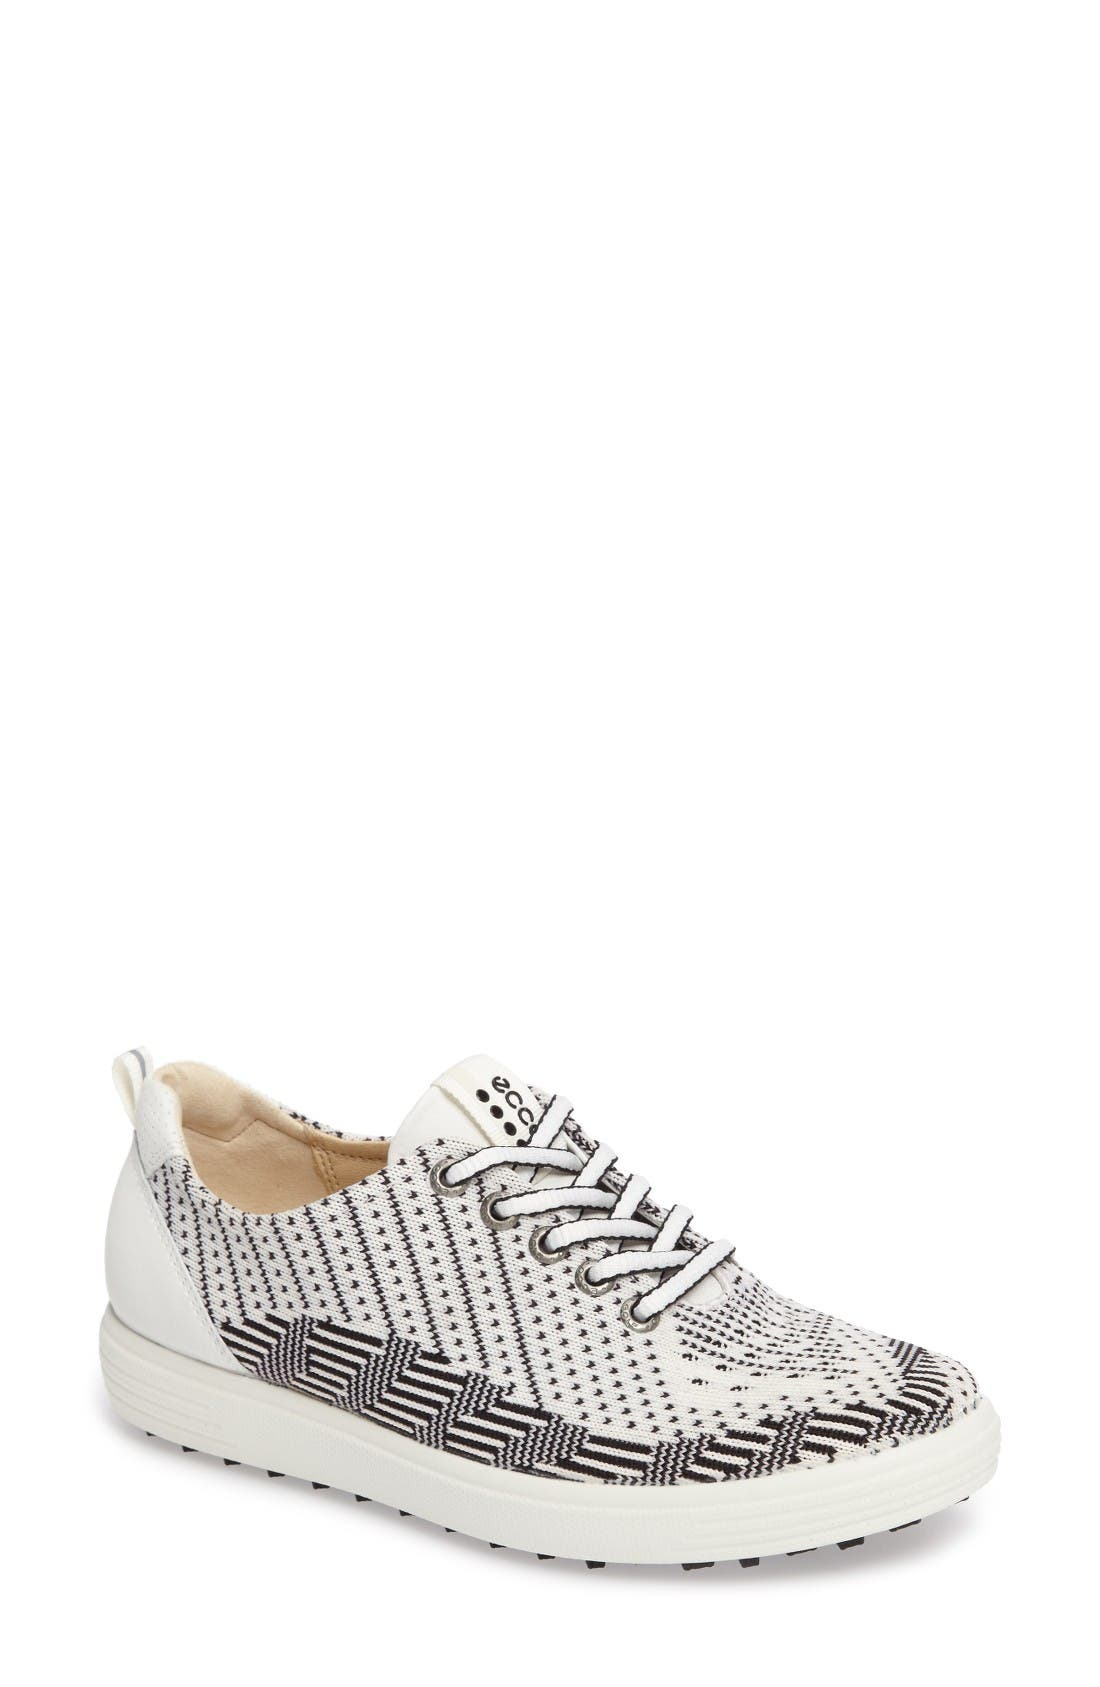 Casual Hybrid Knit Golf Sneaker,                         Main,                         color, White/ Black/ White Leather